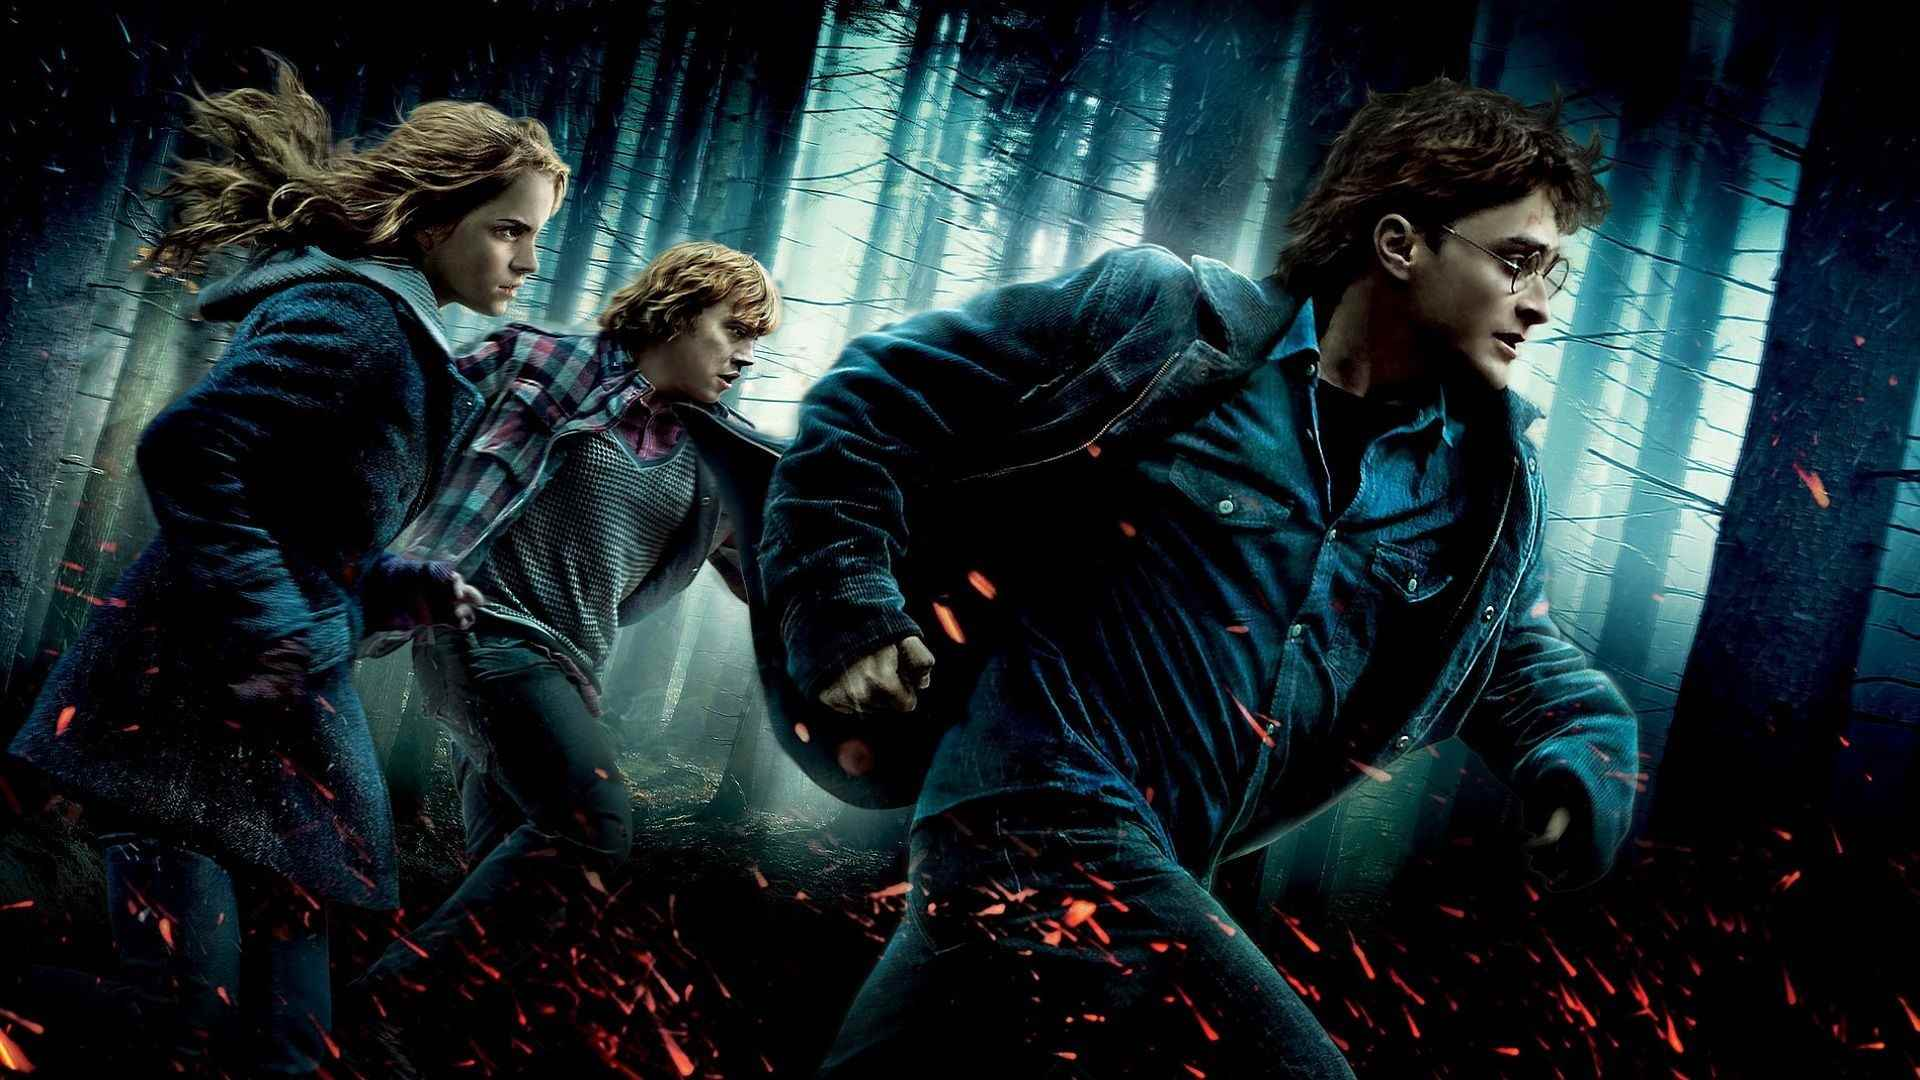 Harry Potter and the Deathly Hallows — Part 1